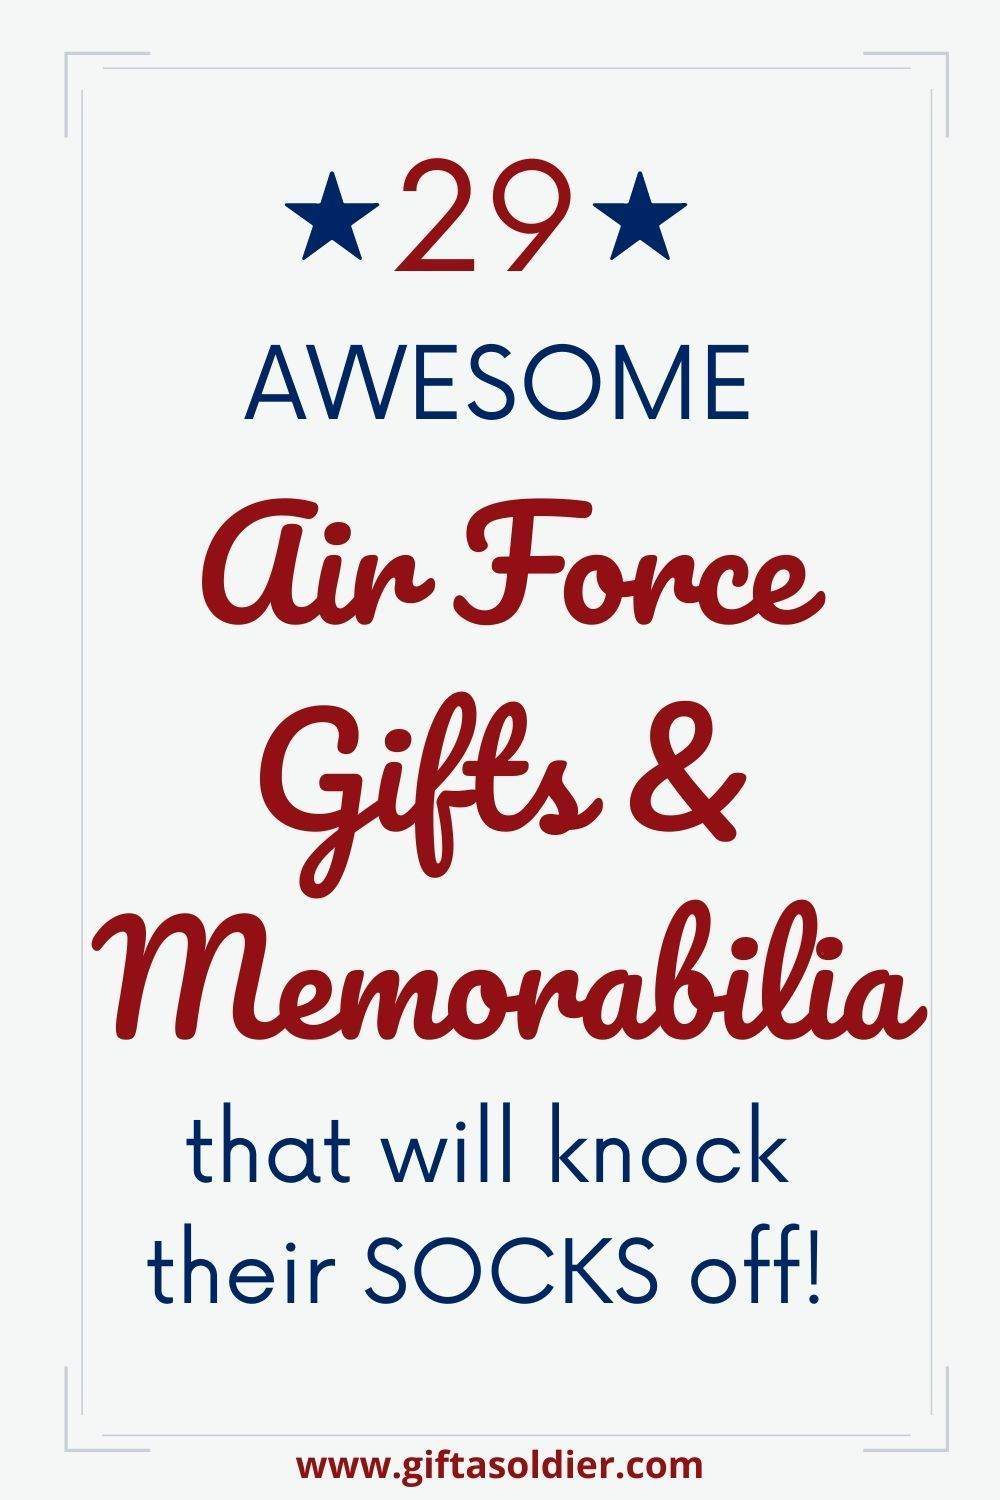 Getting the right air force gifts and memorabilia are